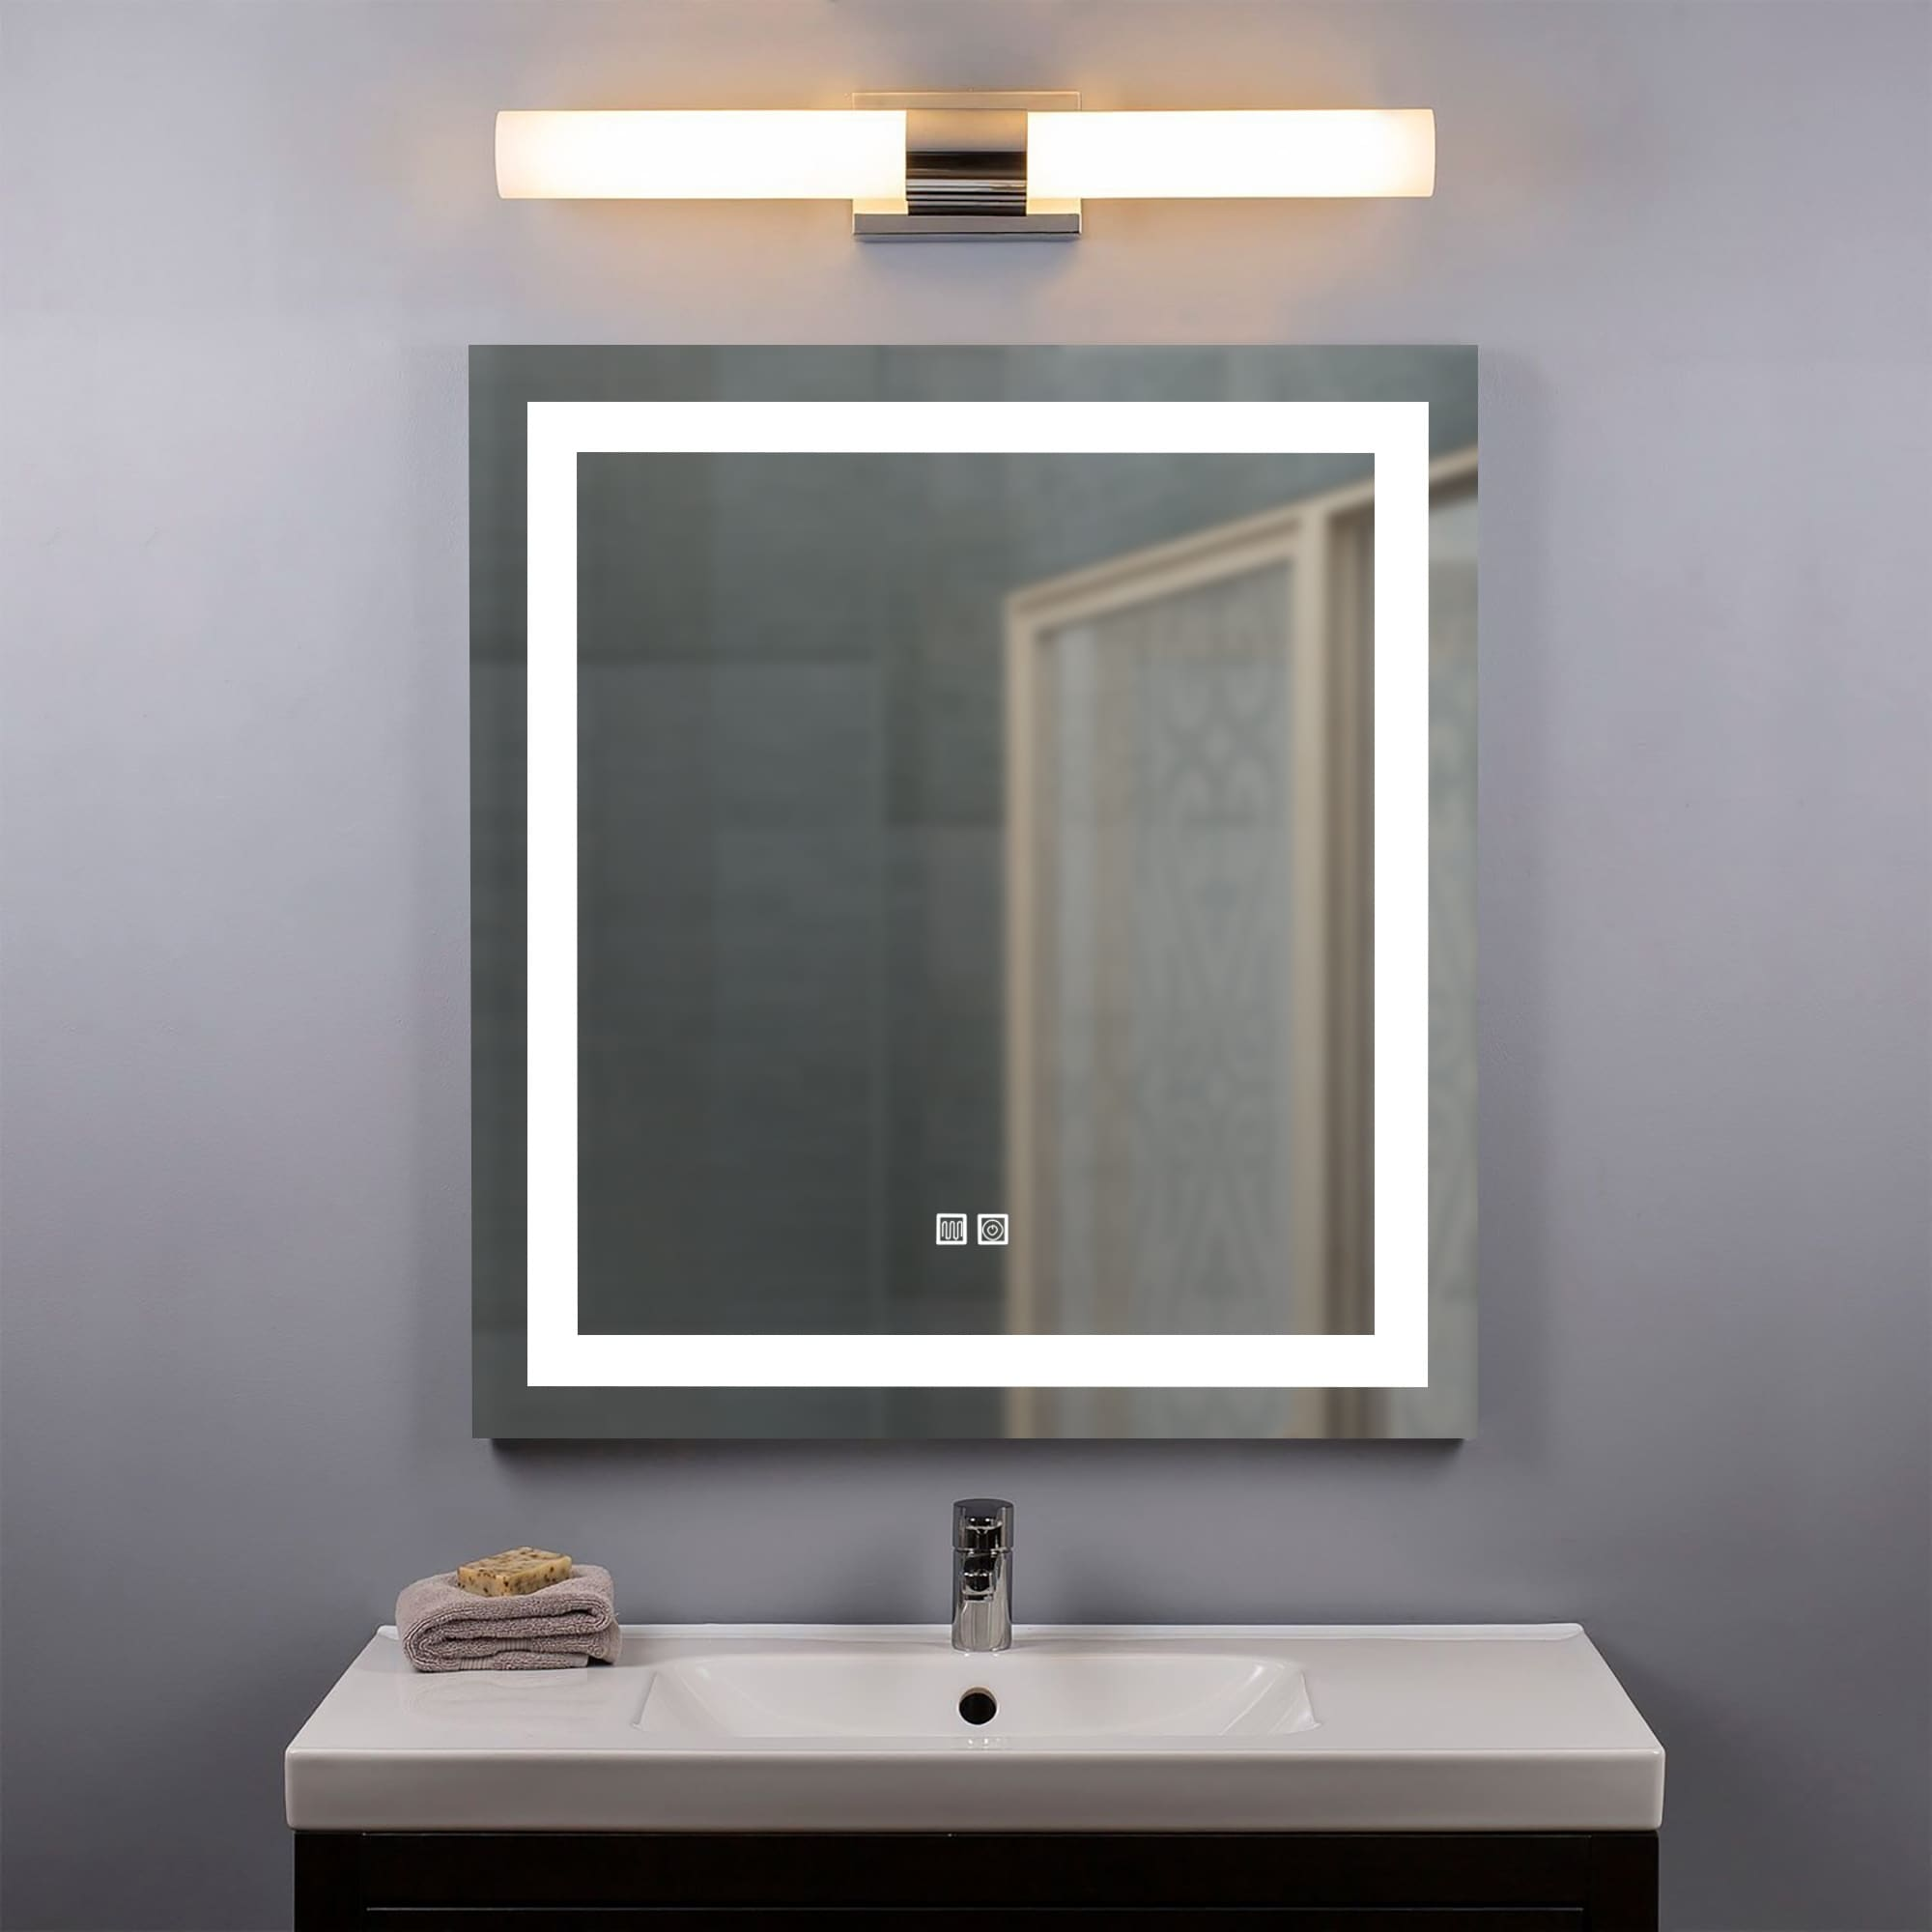 Shop For Saint Birch Lance Frameless Led Lighted Bathroom Vanity Mirror 24 Inches X 30 Inches Get Free Shipping On Everything At Overstock Your Online Home Decor Outlet Store Get 5 In Rewards With Club O 32123998